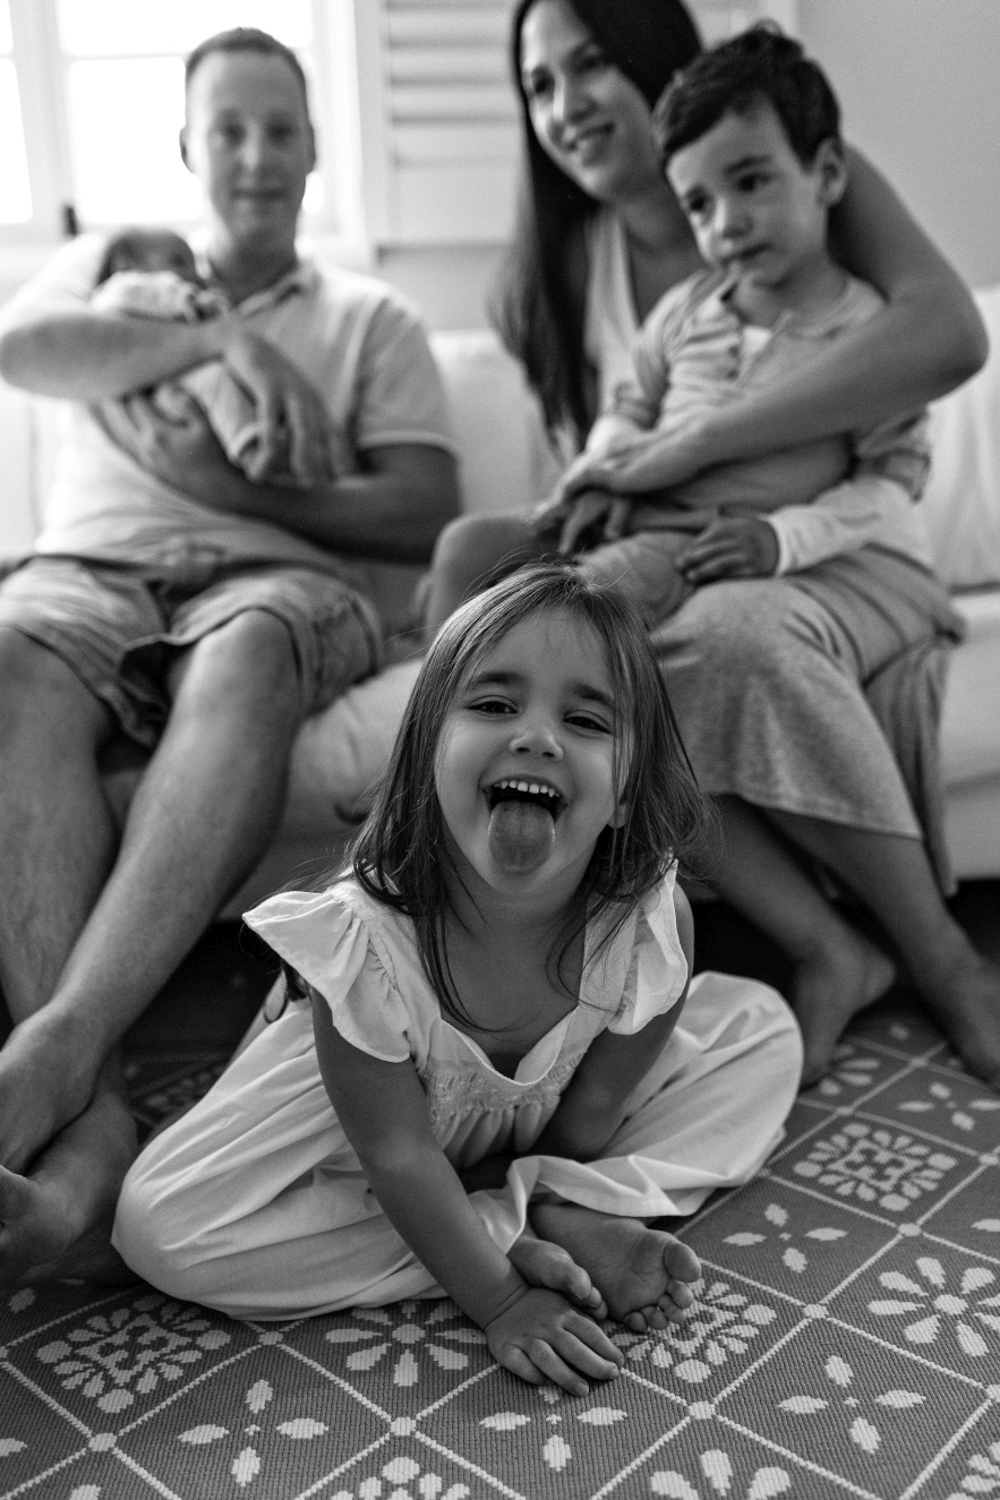 Cheeky girl pokes tongue at camera during lifestyle session in Tasmania.